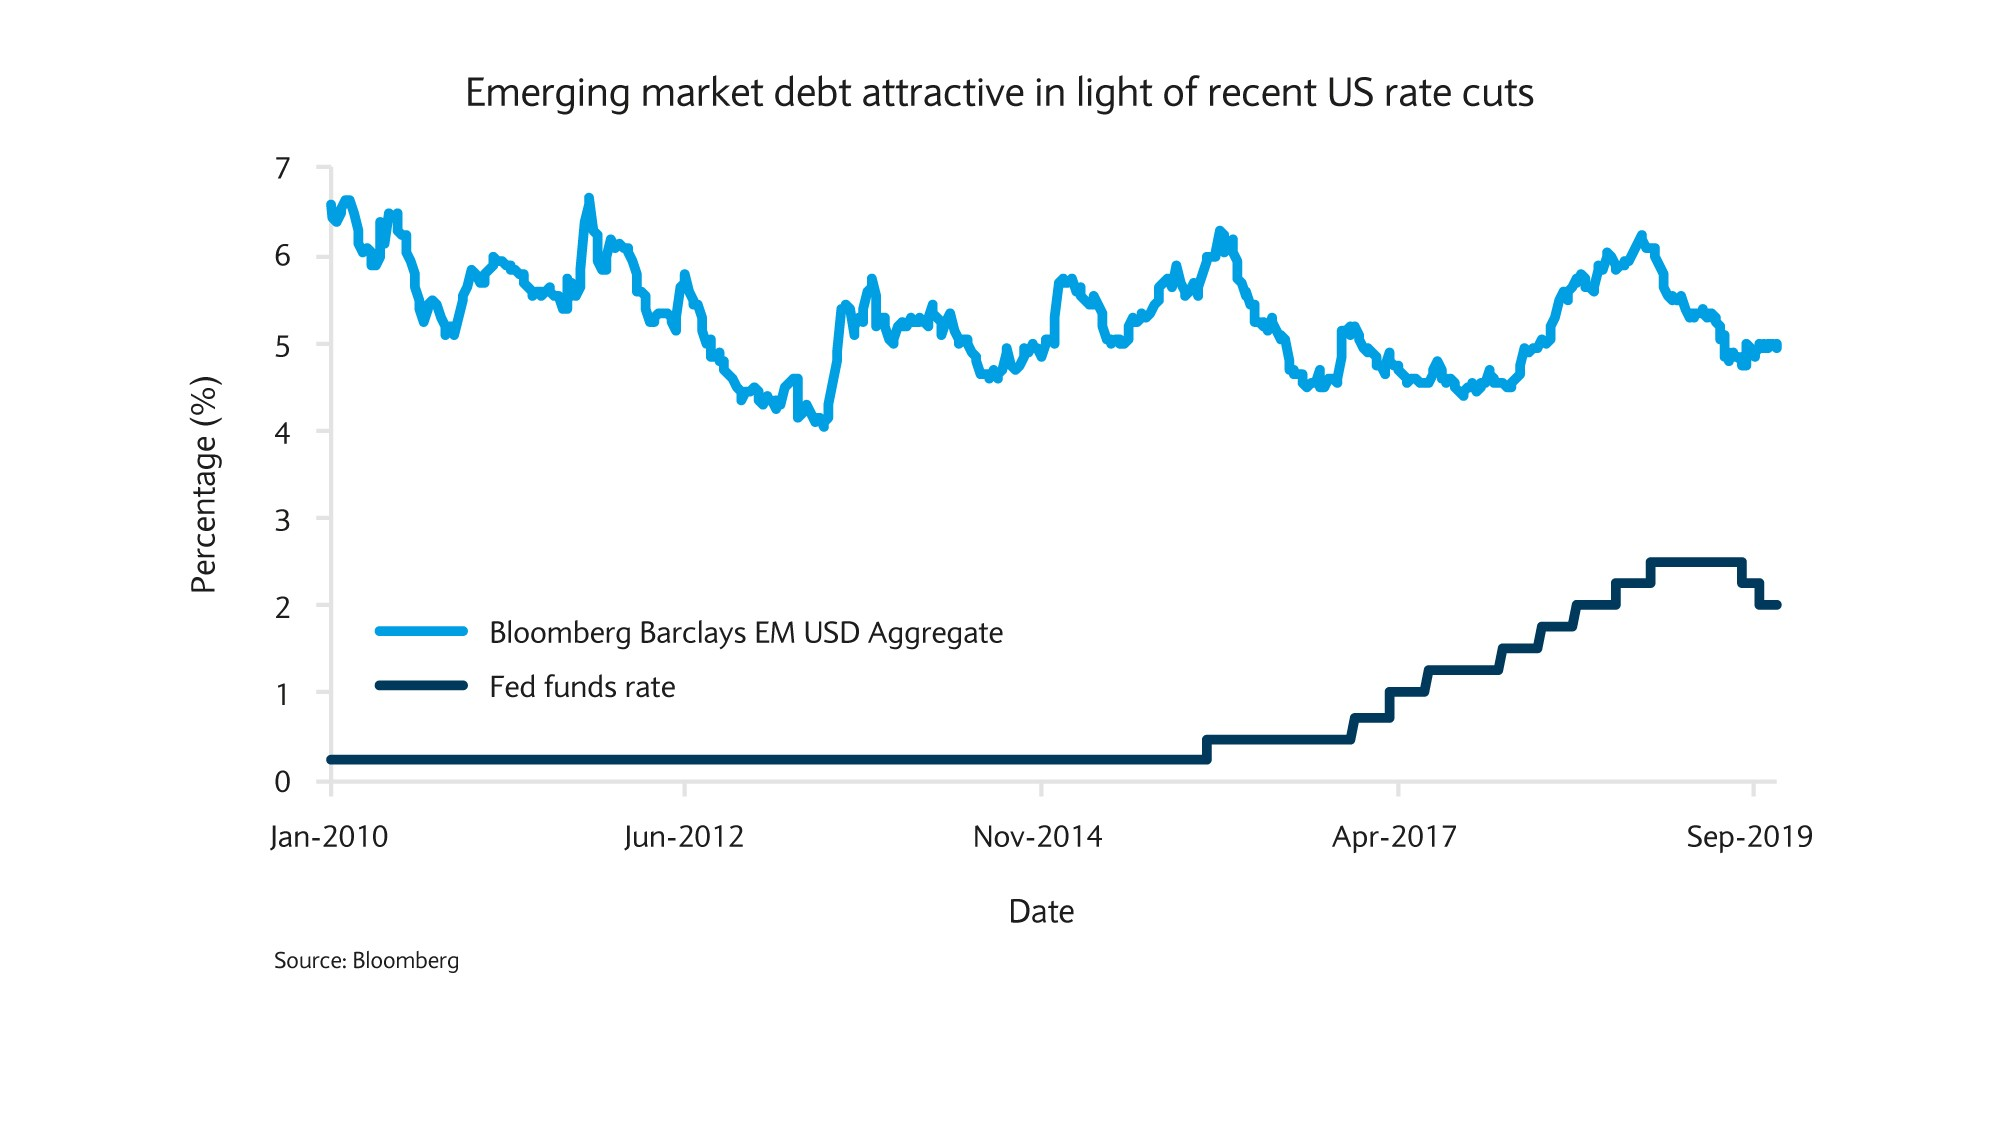 Emerging market debt attractive in light of recent US rate cuts